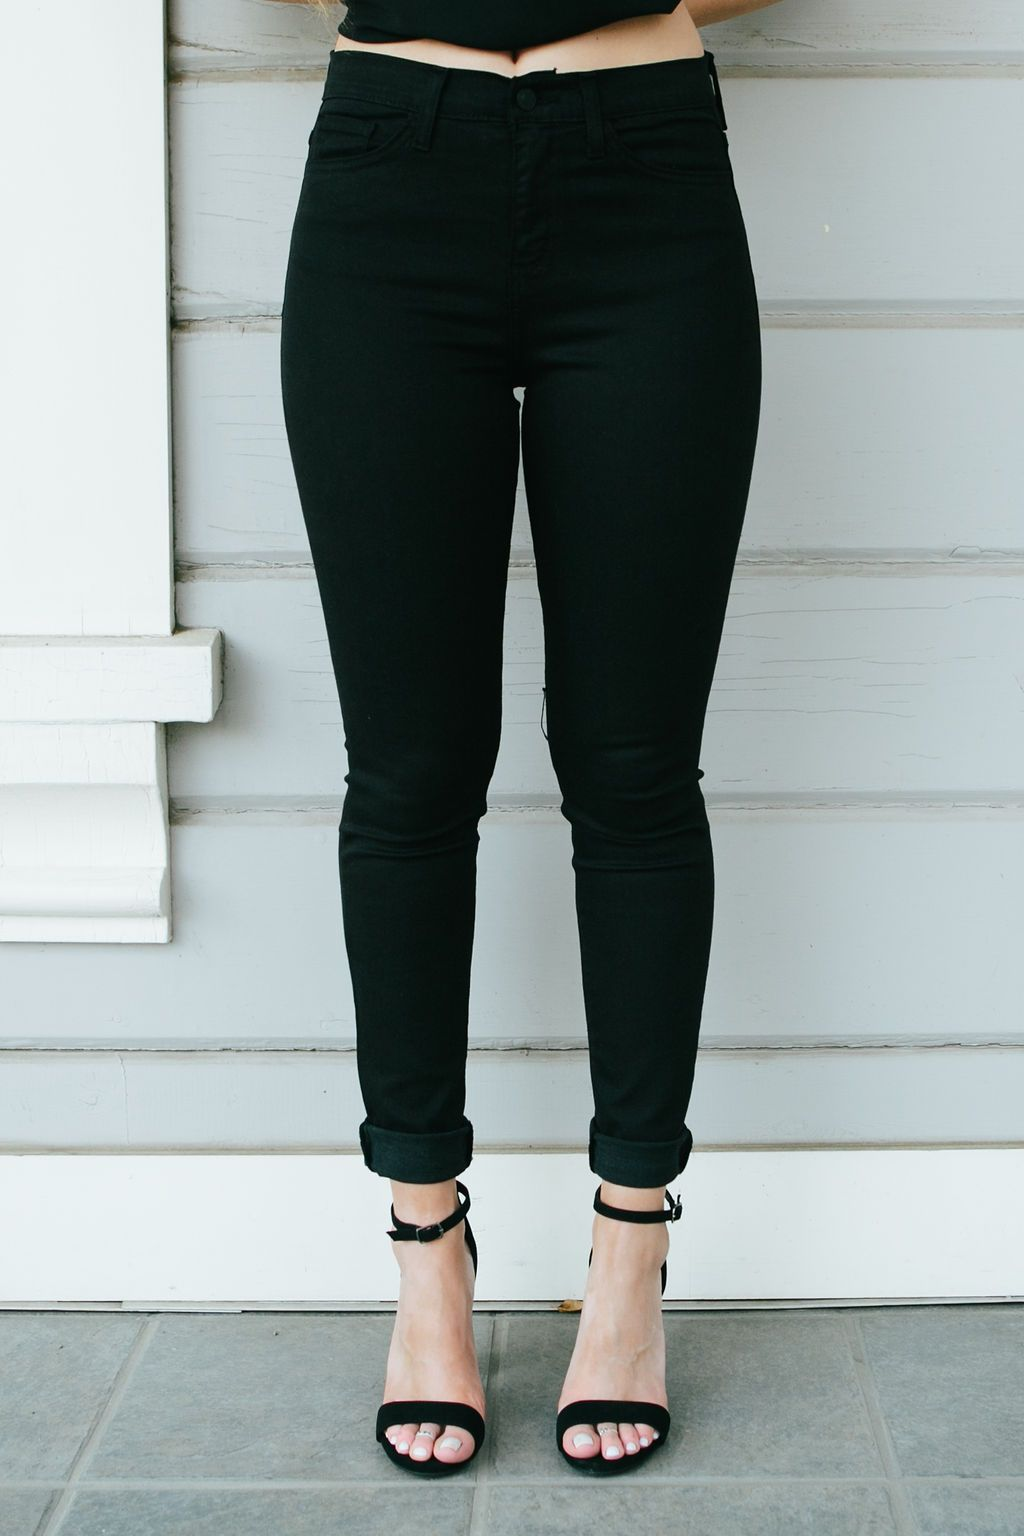 Women's Black High Waisted Skinny Jeans